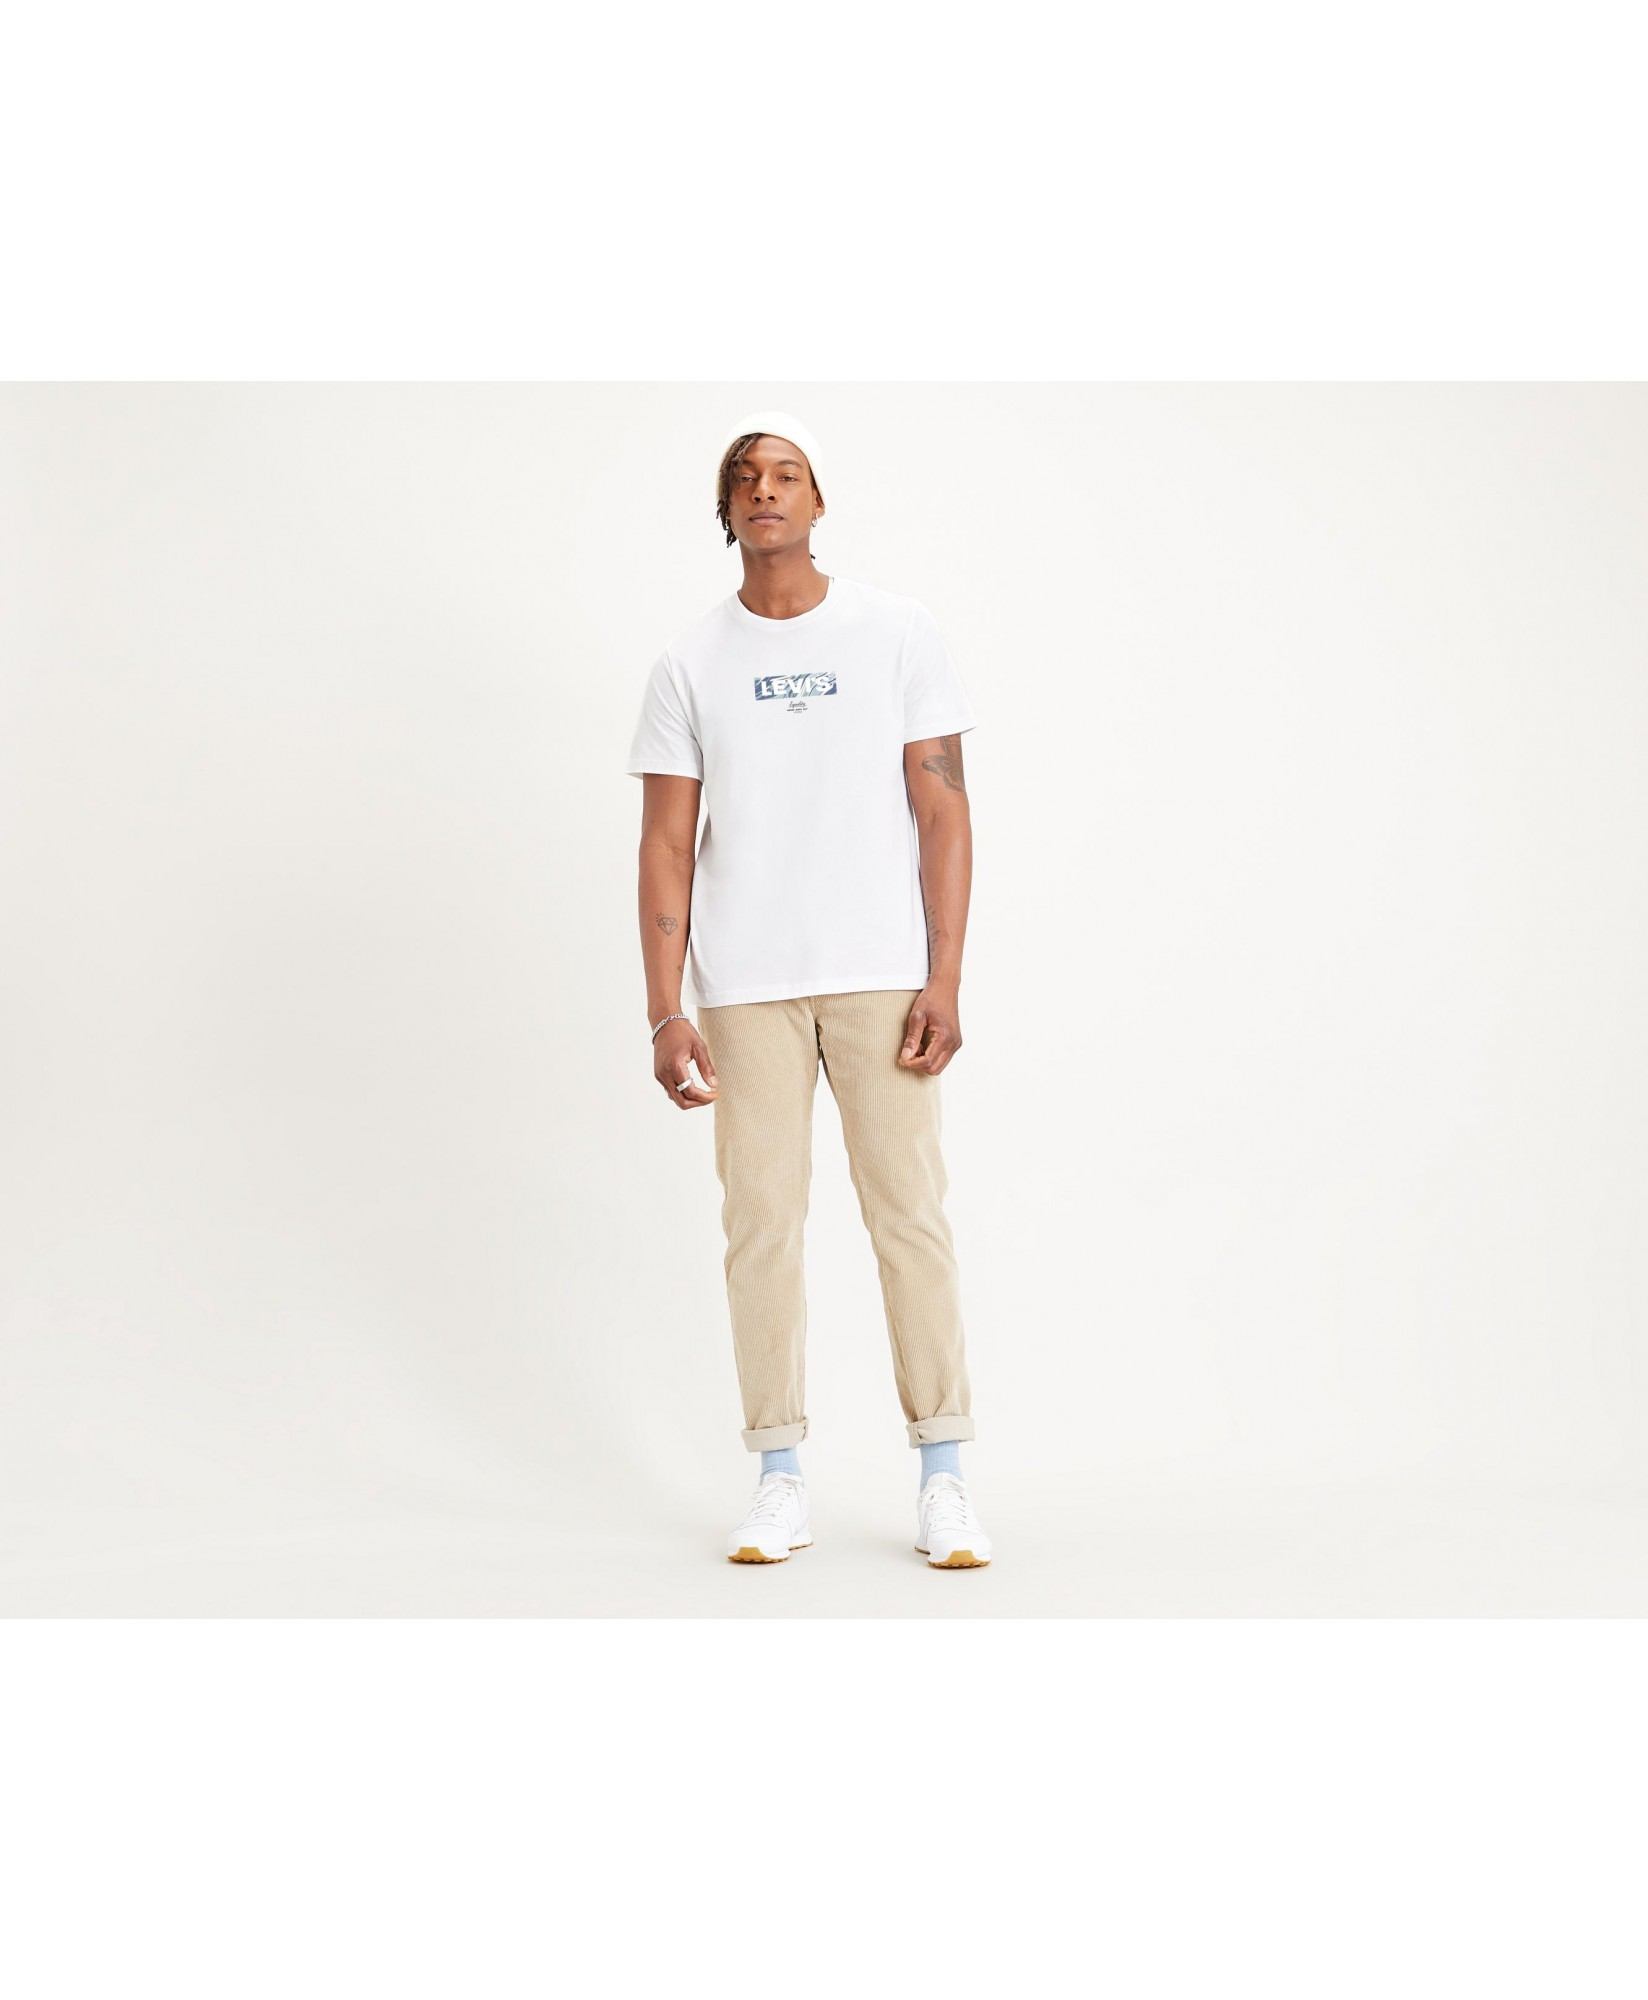 CAMISETA RELAXED FIT CAMISETA RELAXED FIT